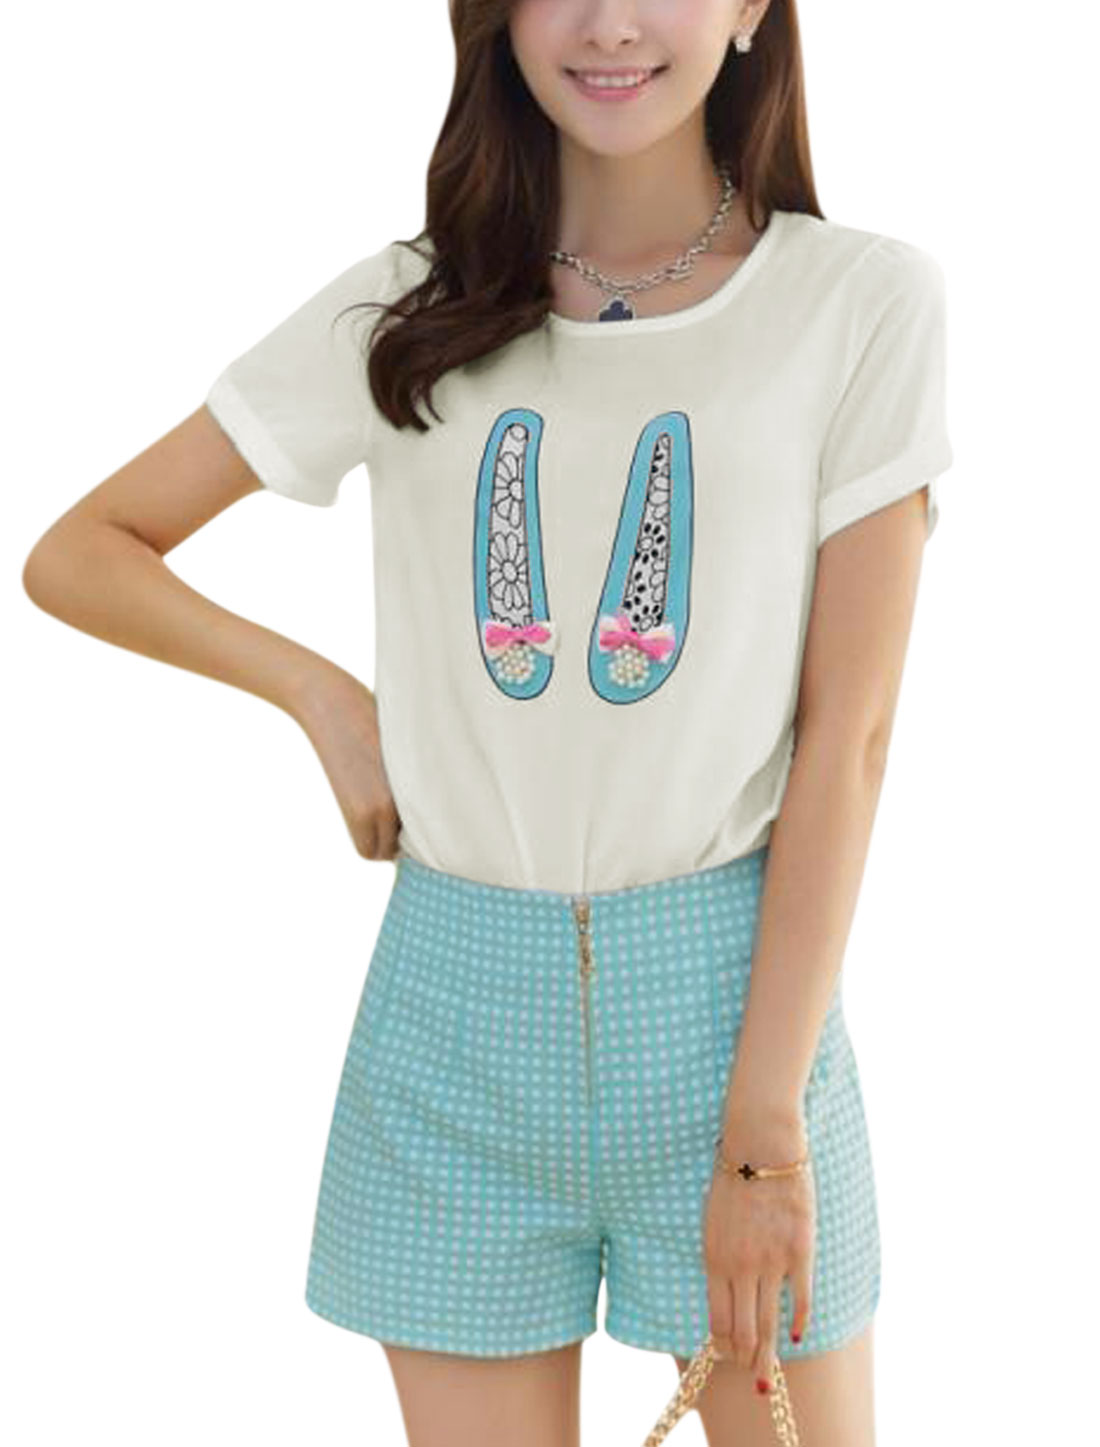 Lady Zip Fly Dots Embroidery Aqua Blue Shorts w Shoes Prints White Top M